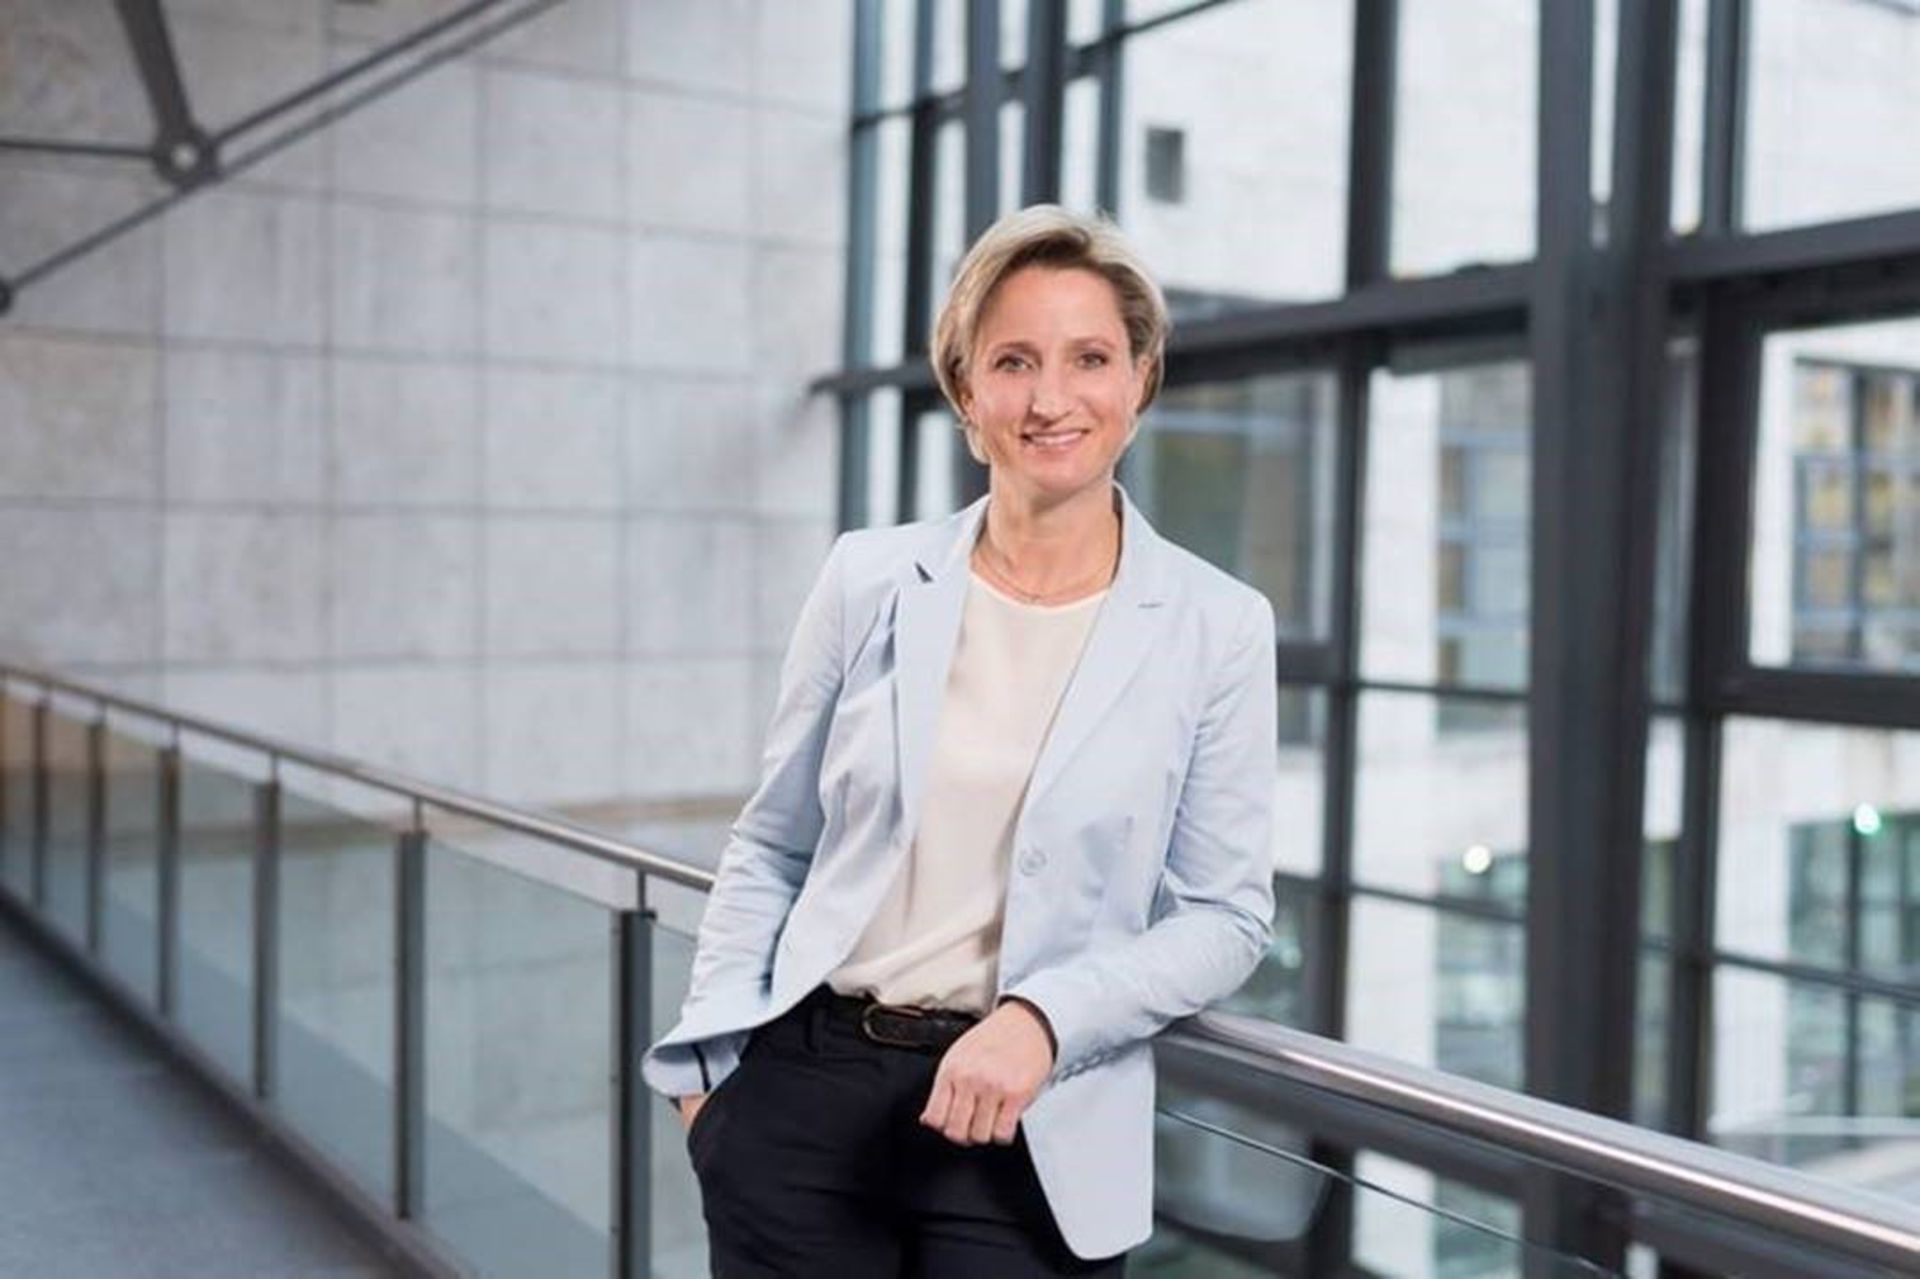 Dr. Nicole Hoffmeister-Kraut, Minister for Economic Affairs, Labour and Housing of the State of Baden-Württemberg